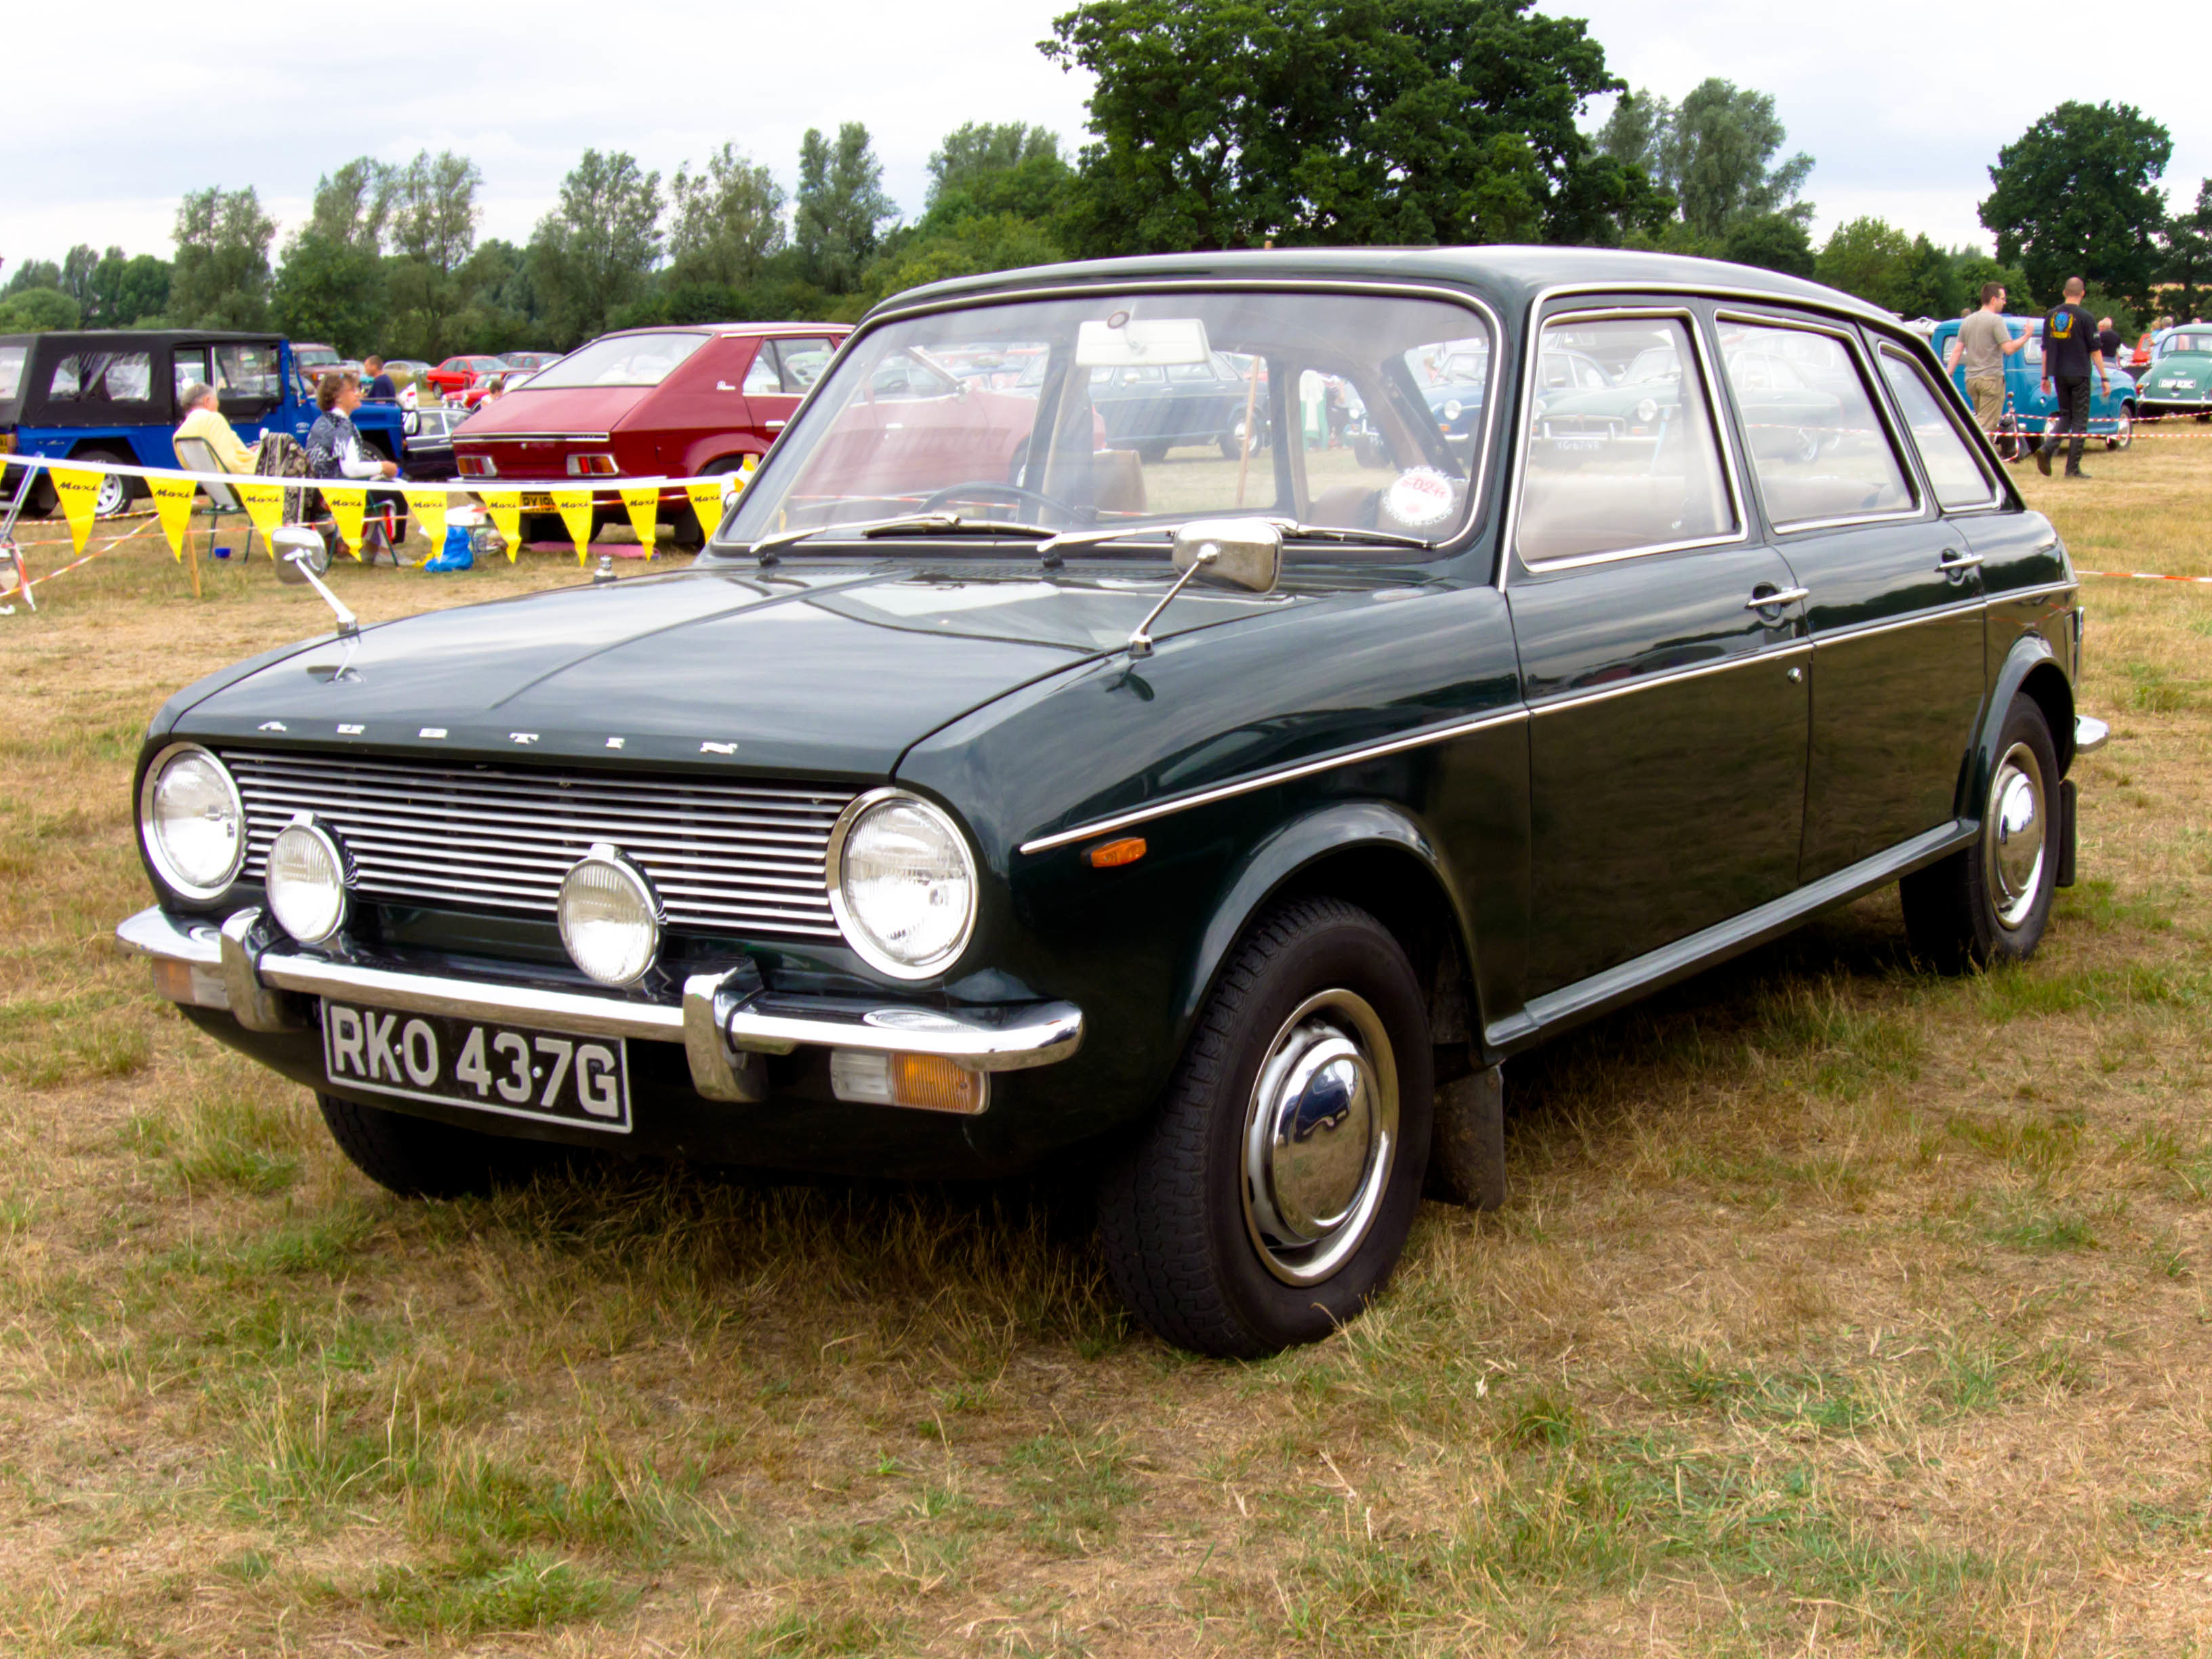 File:Austin Maxi early version.jpg - Wikimedia Commons